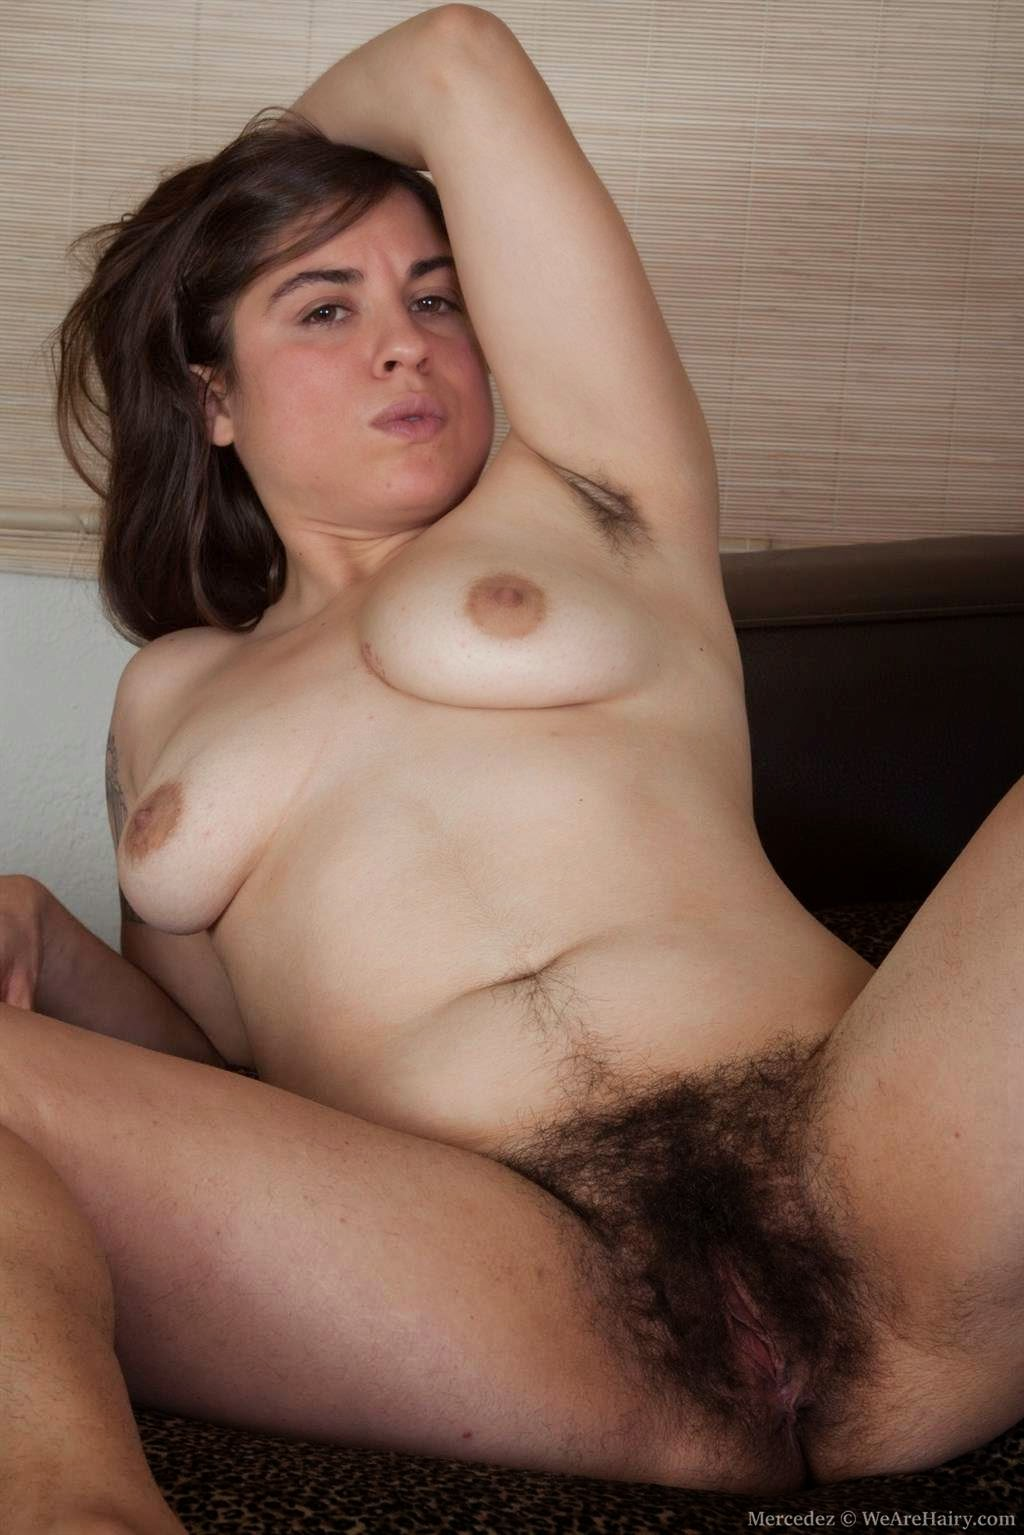 Hairy cunt She has